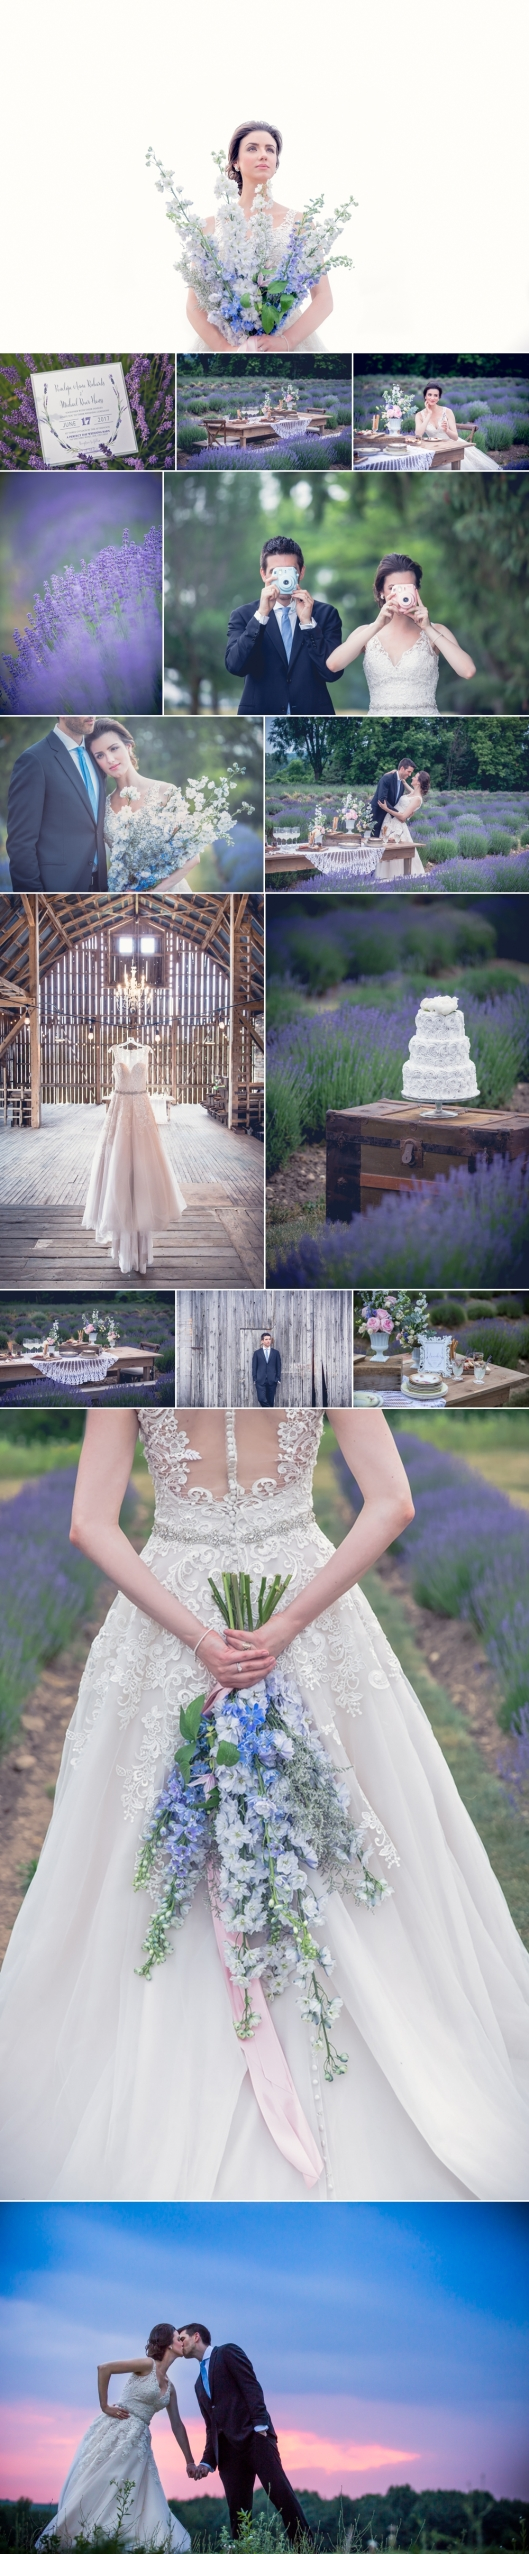 The Lavender Farm wedding, Cambridge, Drumbo, Ontario